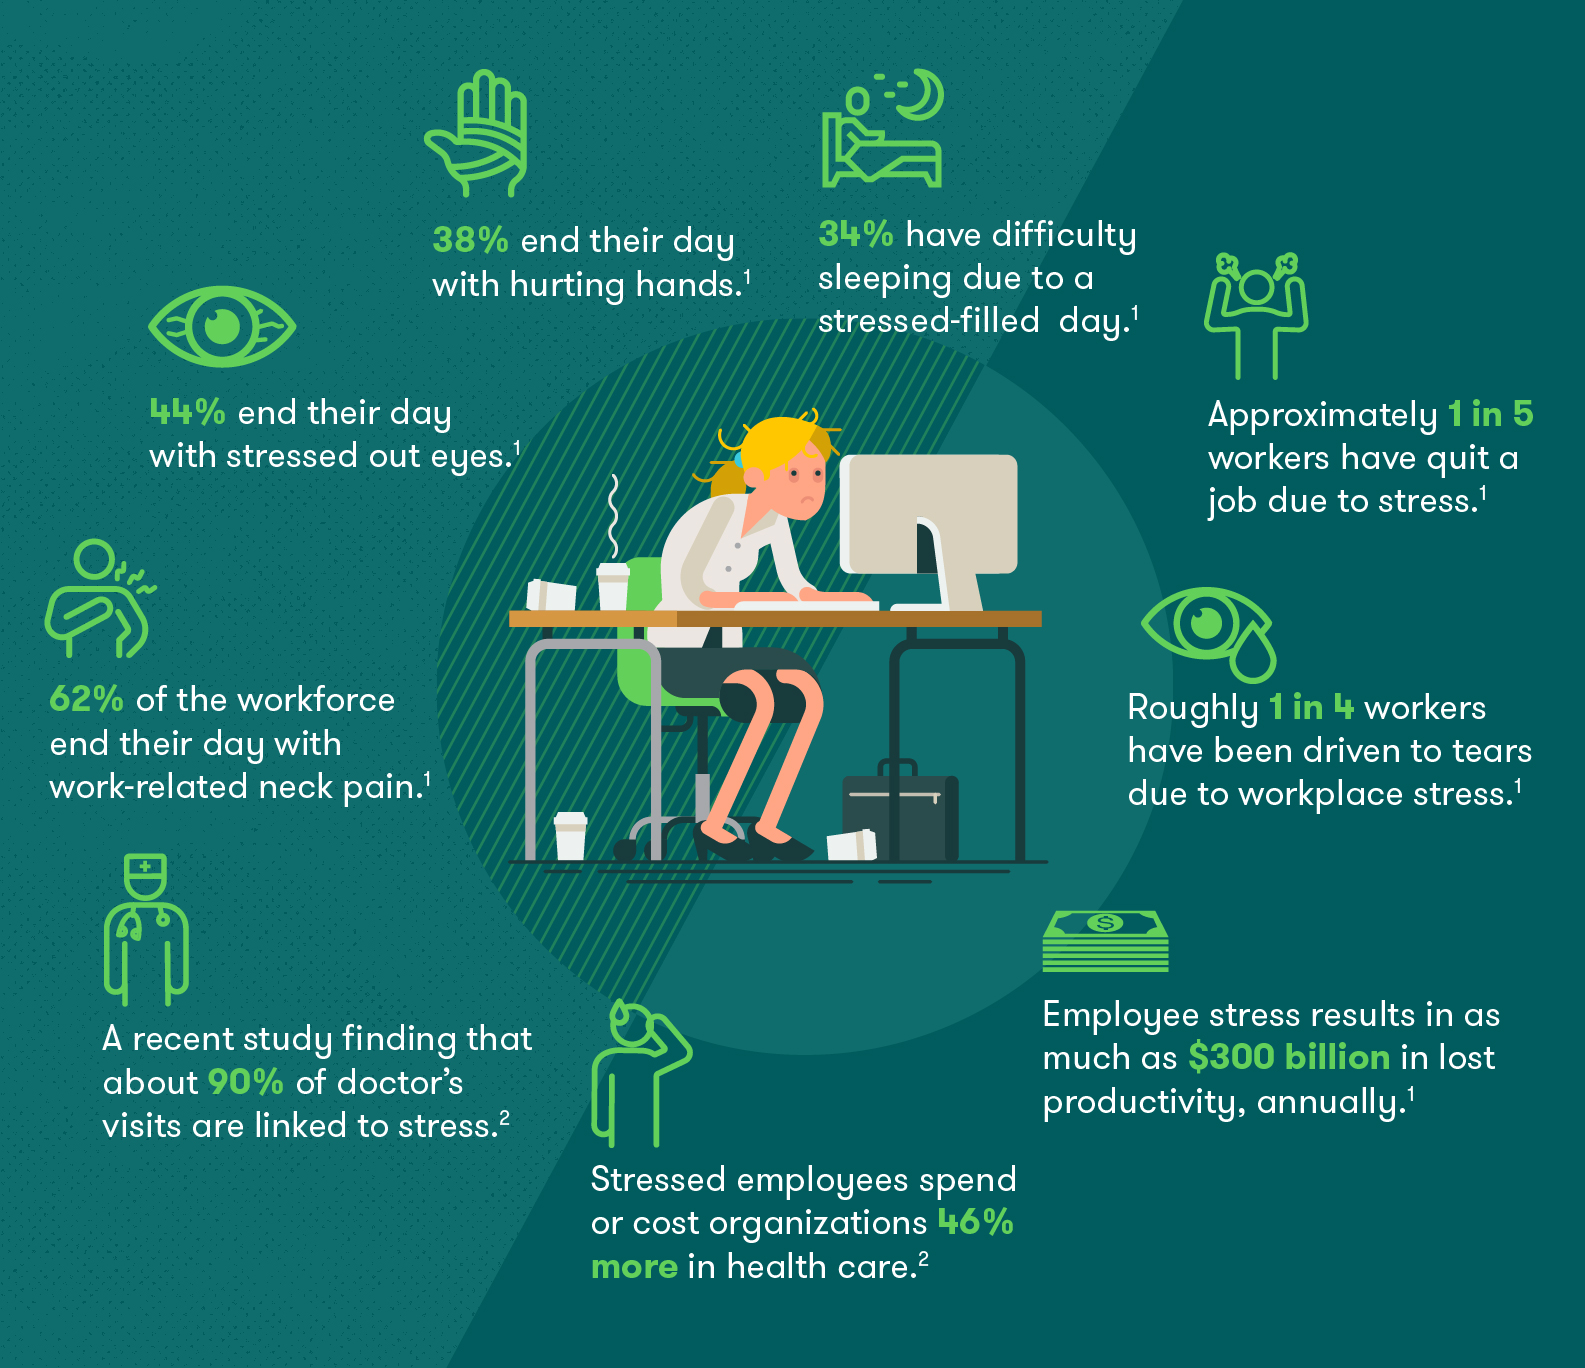 stress-management-infographic